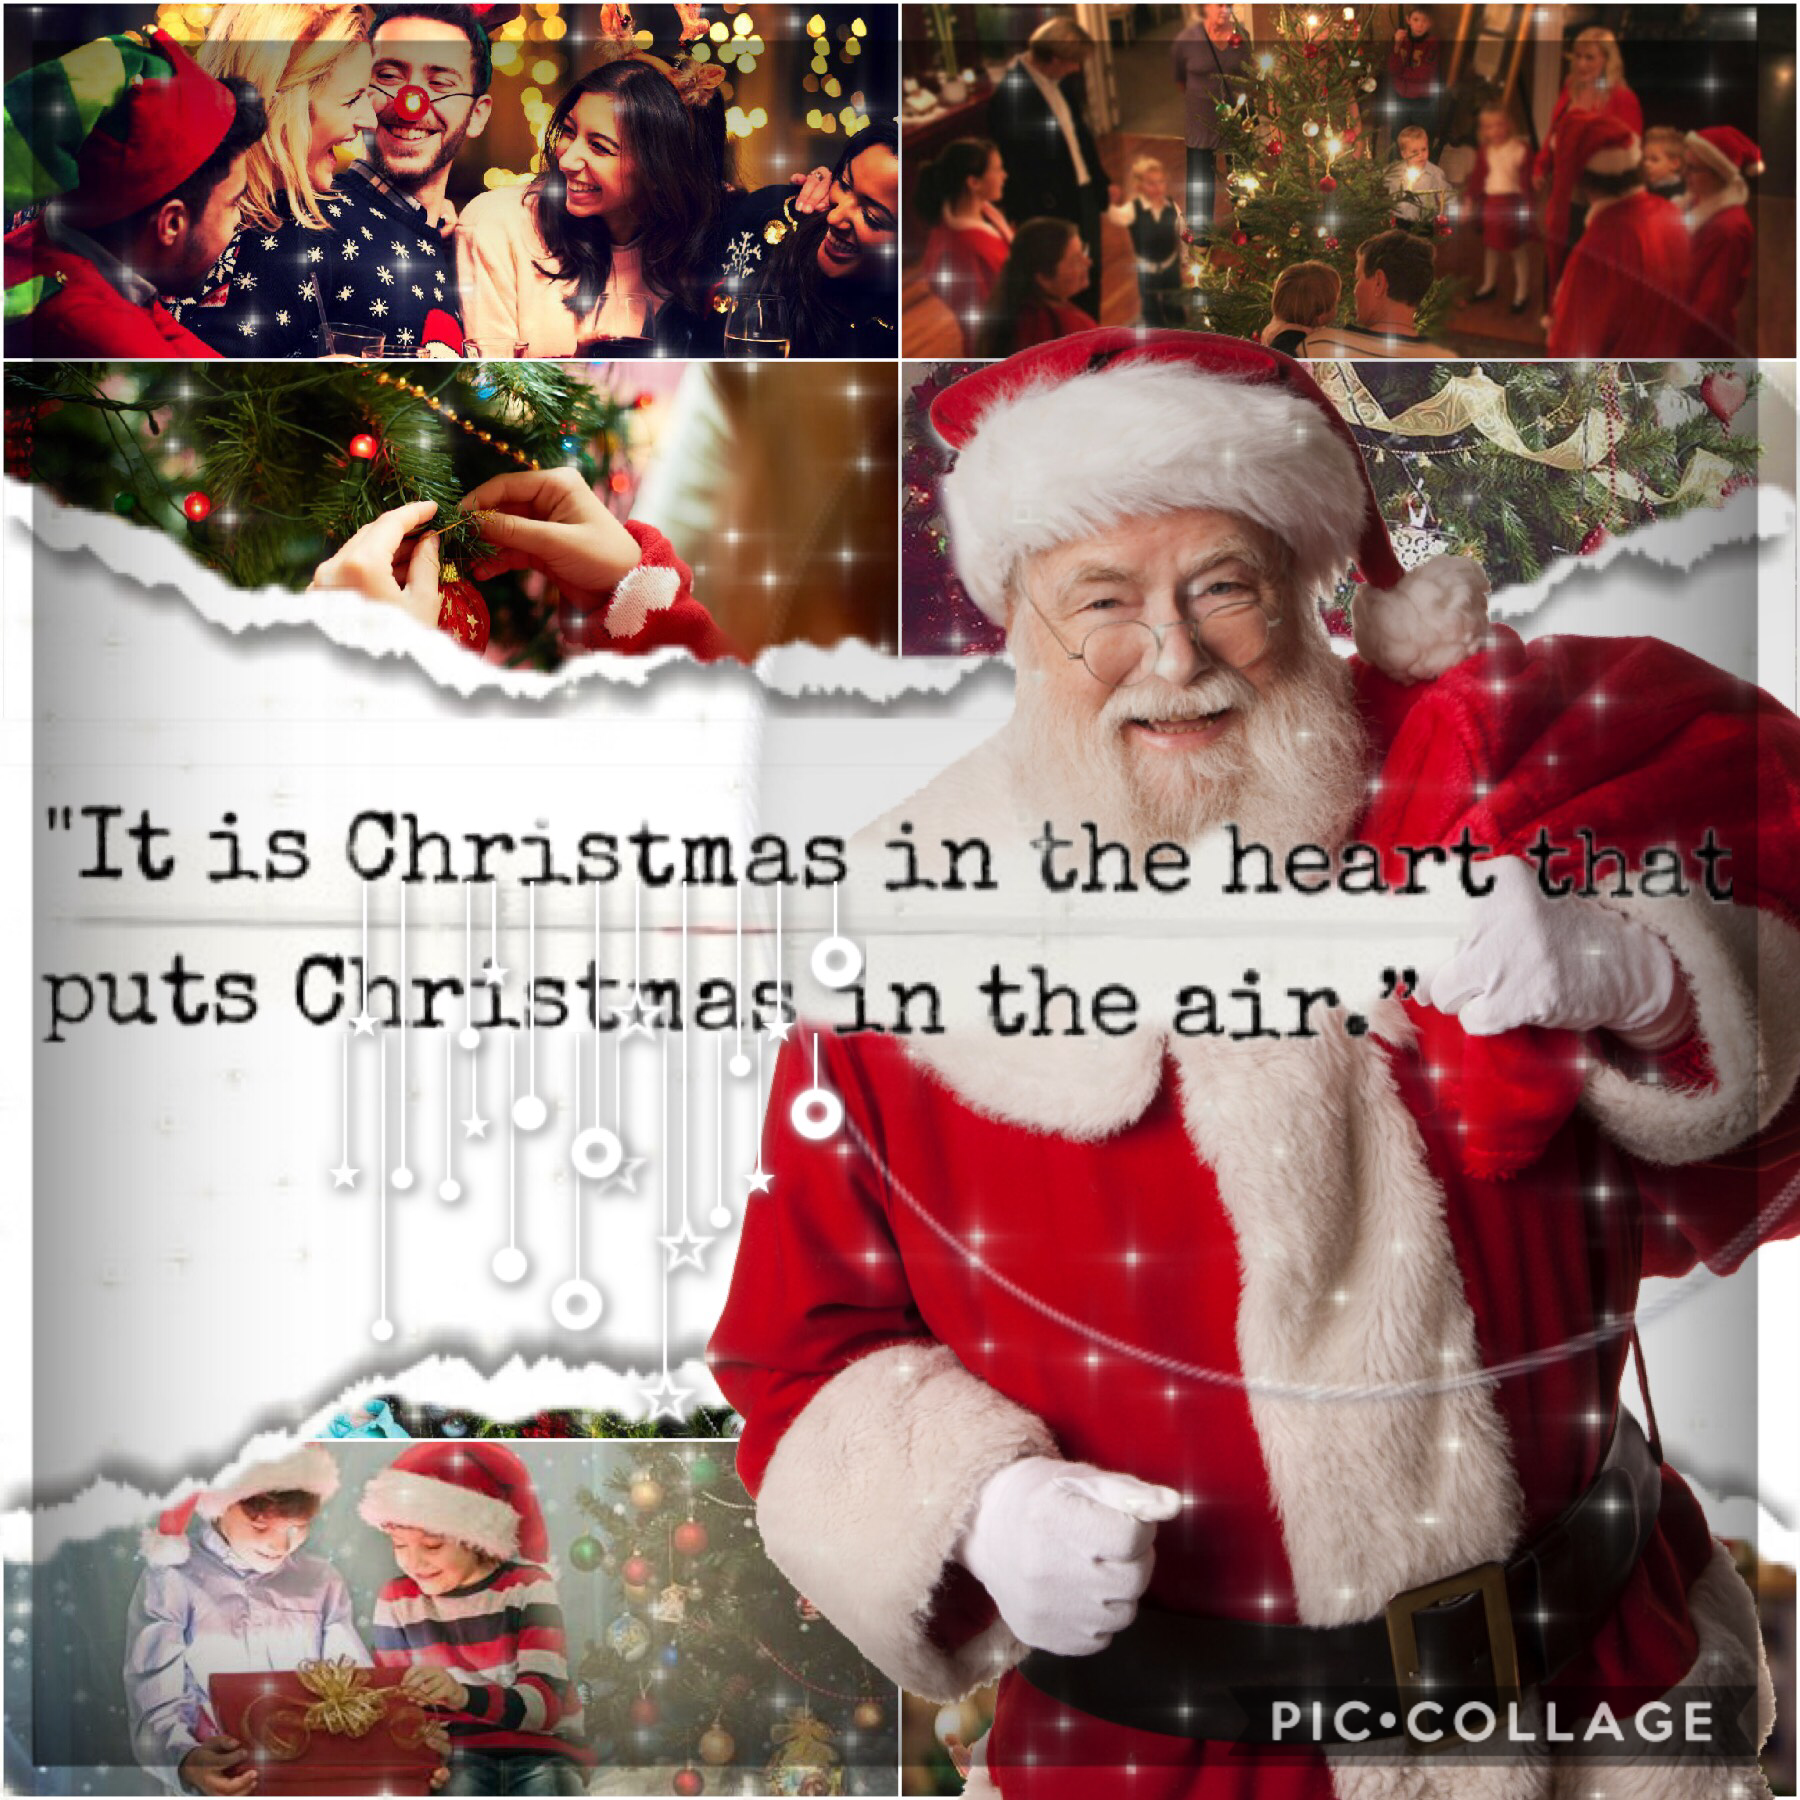 🎄❤️TAP❤️🎄 I CAN'T WAIT 'TIL CHRISTMAS!!!!! 6 sleeps to go... Anyways so I've tried out this style because I've seen loads of collages so question for you amazing collagers, do you like this? Please comment. Oh and one more thing; sorry for being so inacti